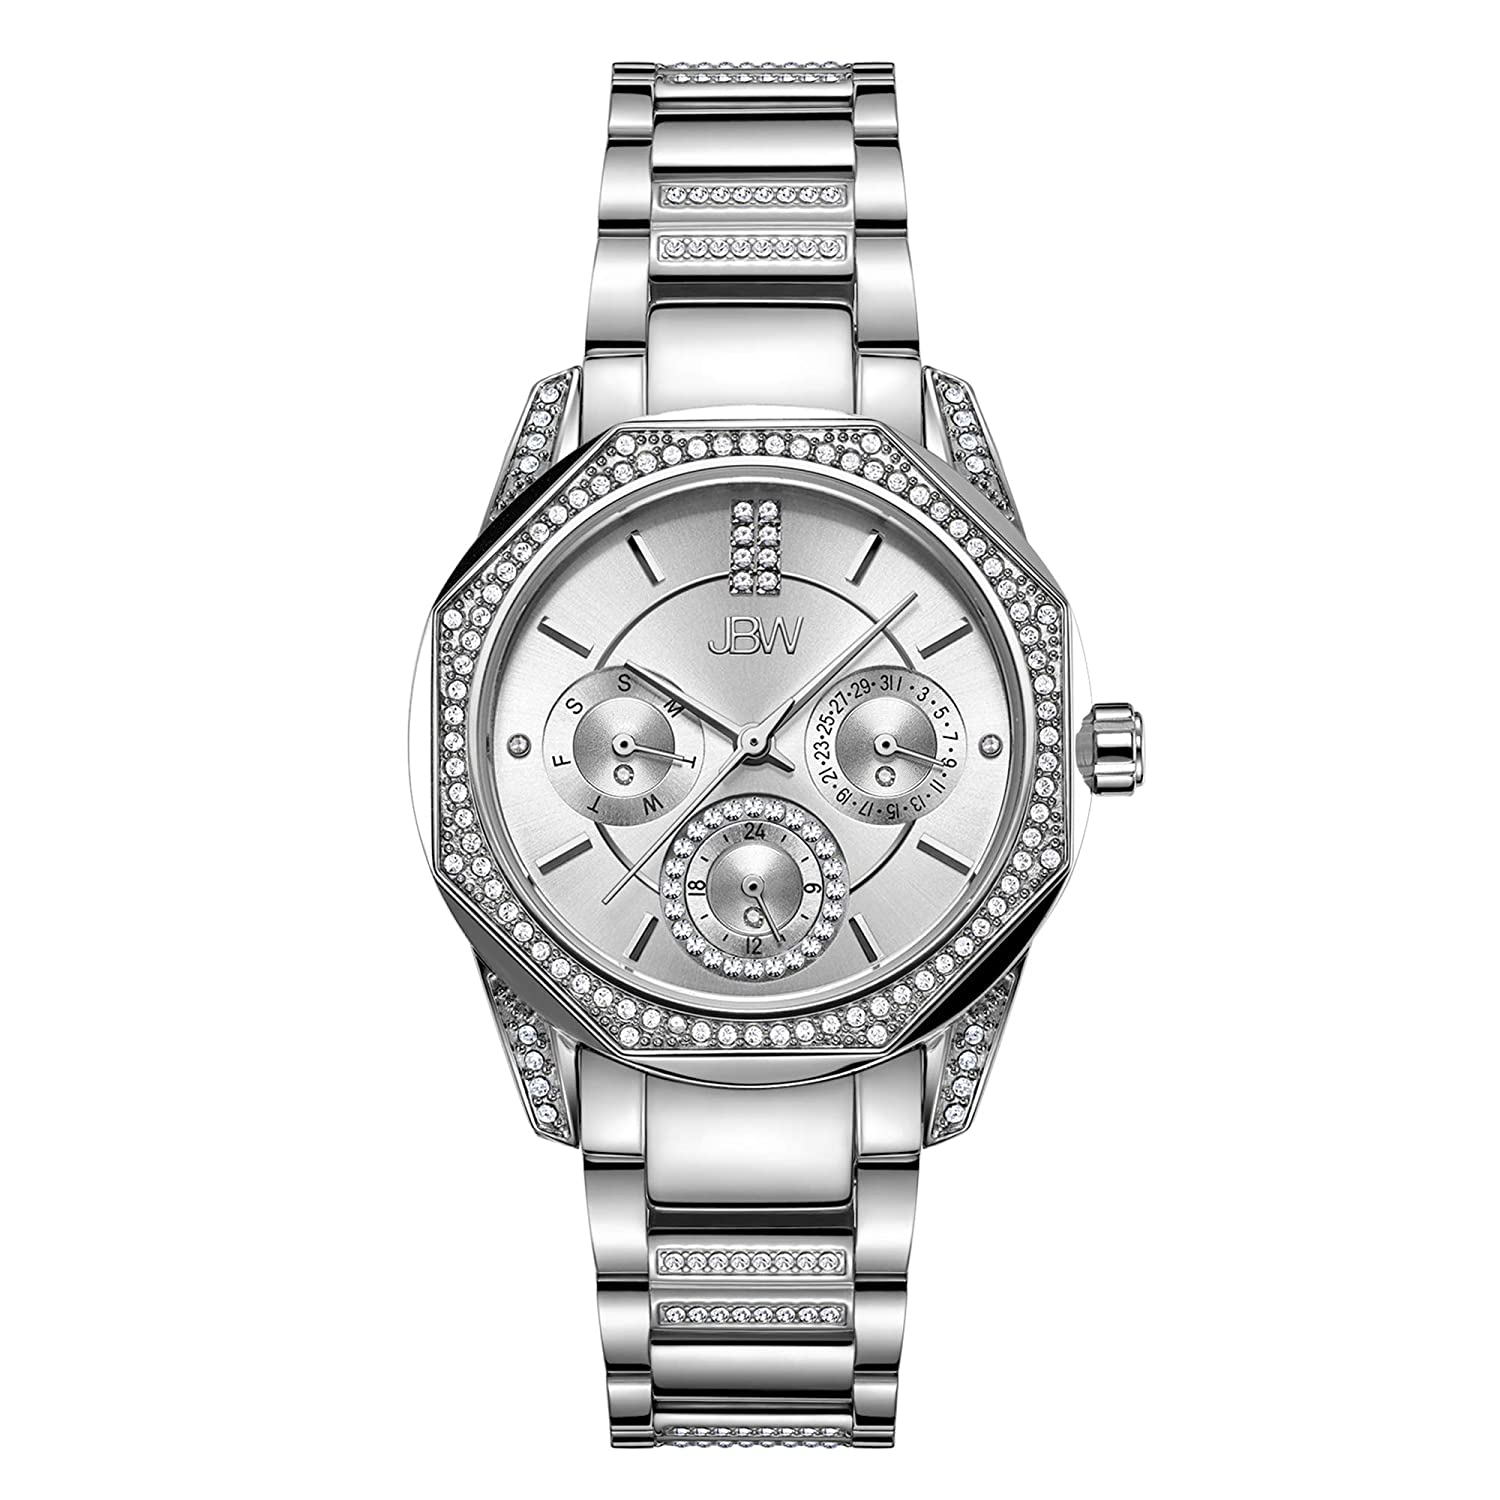 JBW Luxury Women's Marquis J6369 0.05 ctw Diamond Wrist Watch with Stainless Steel Bracelet